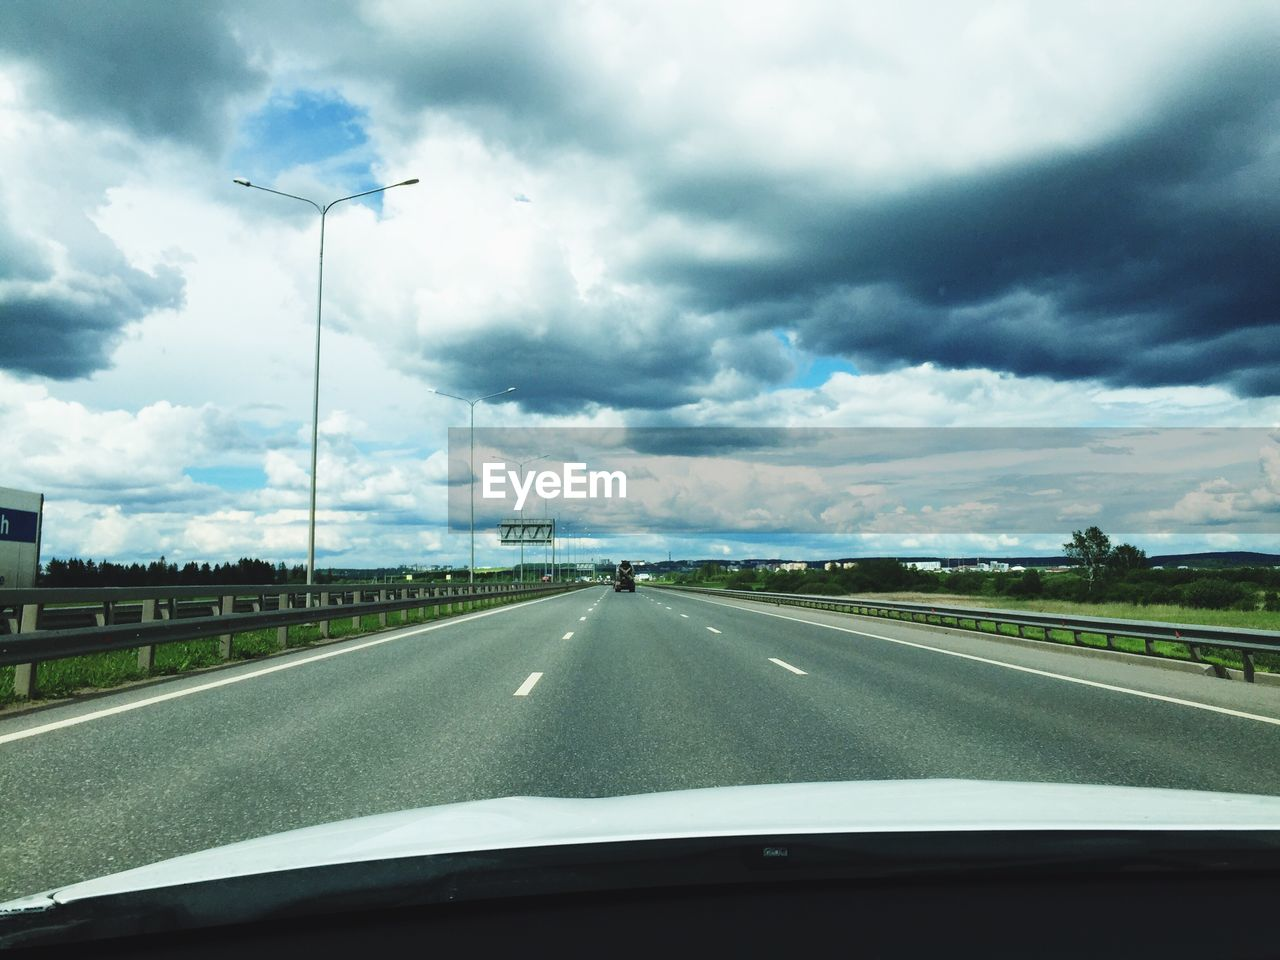 car, car interior, transportation, vehicle interior, road, windshield, cloud - sky, car point of view, glass - material, land vehicle, sky, mode of transport, the way forward, dashboard, travel, highway, driving, road trip, day, journey, nature, windscreen, no people, landscape, storm cloud, scenics, outdoors